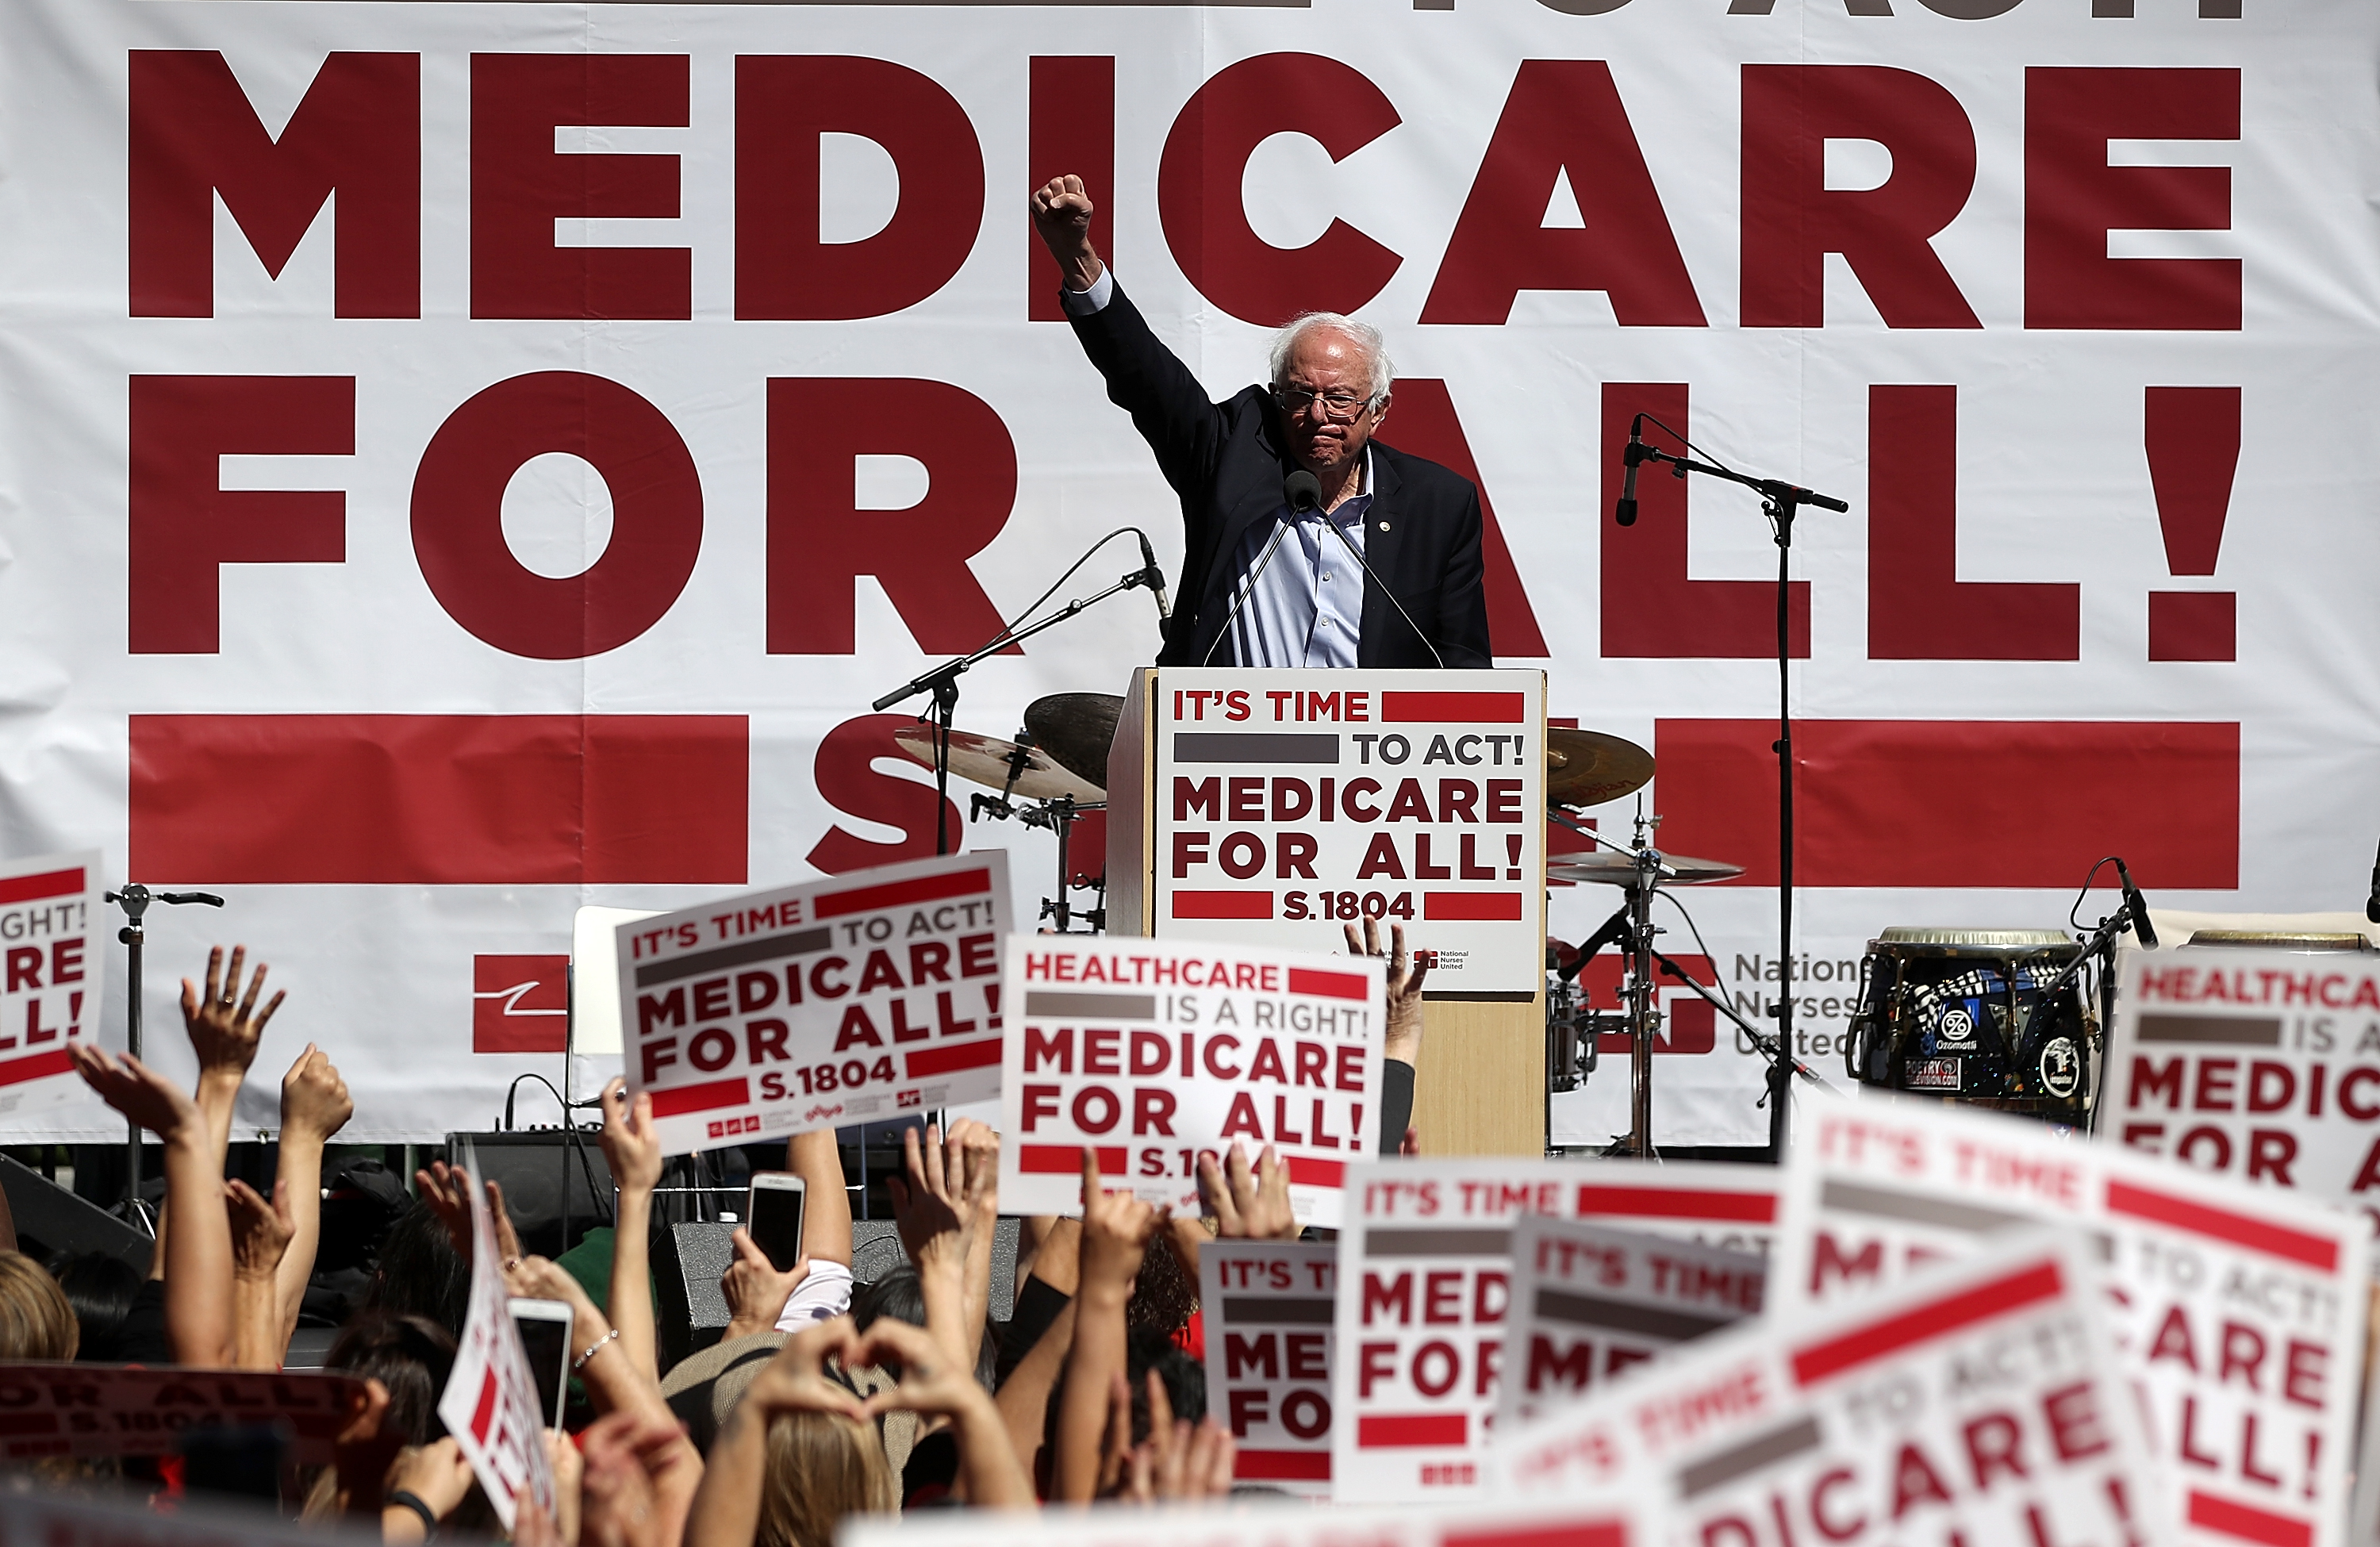 U.S. Sen. Berni Sanders (I-VT) speaks during a health care rally at the  2017 Convention of the California Nurses Association/National Nurses Organizing Committee on September 22, 2017 in San Francisco, California. Sen. Bernie Sanders addressed the California Nurses Association about his Medicare for All Act of 2017 bill.